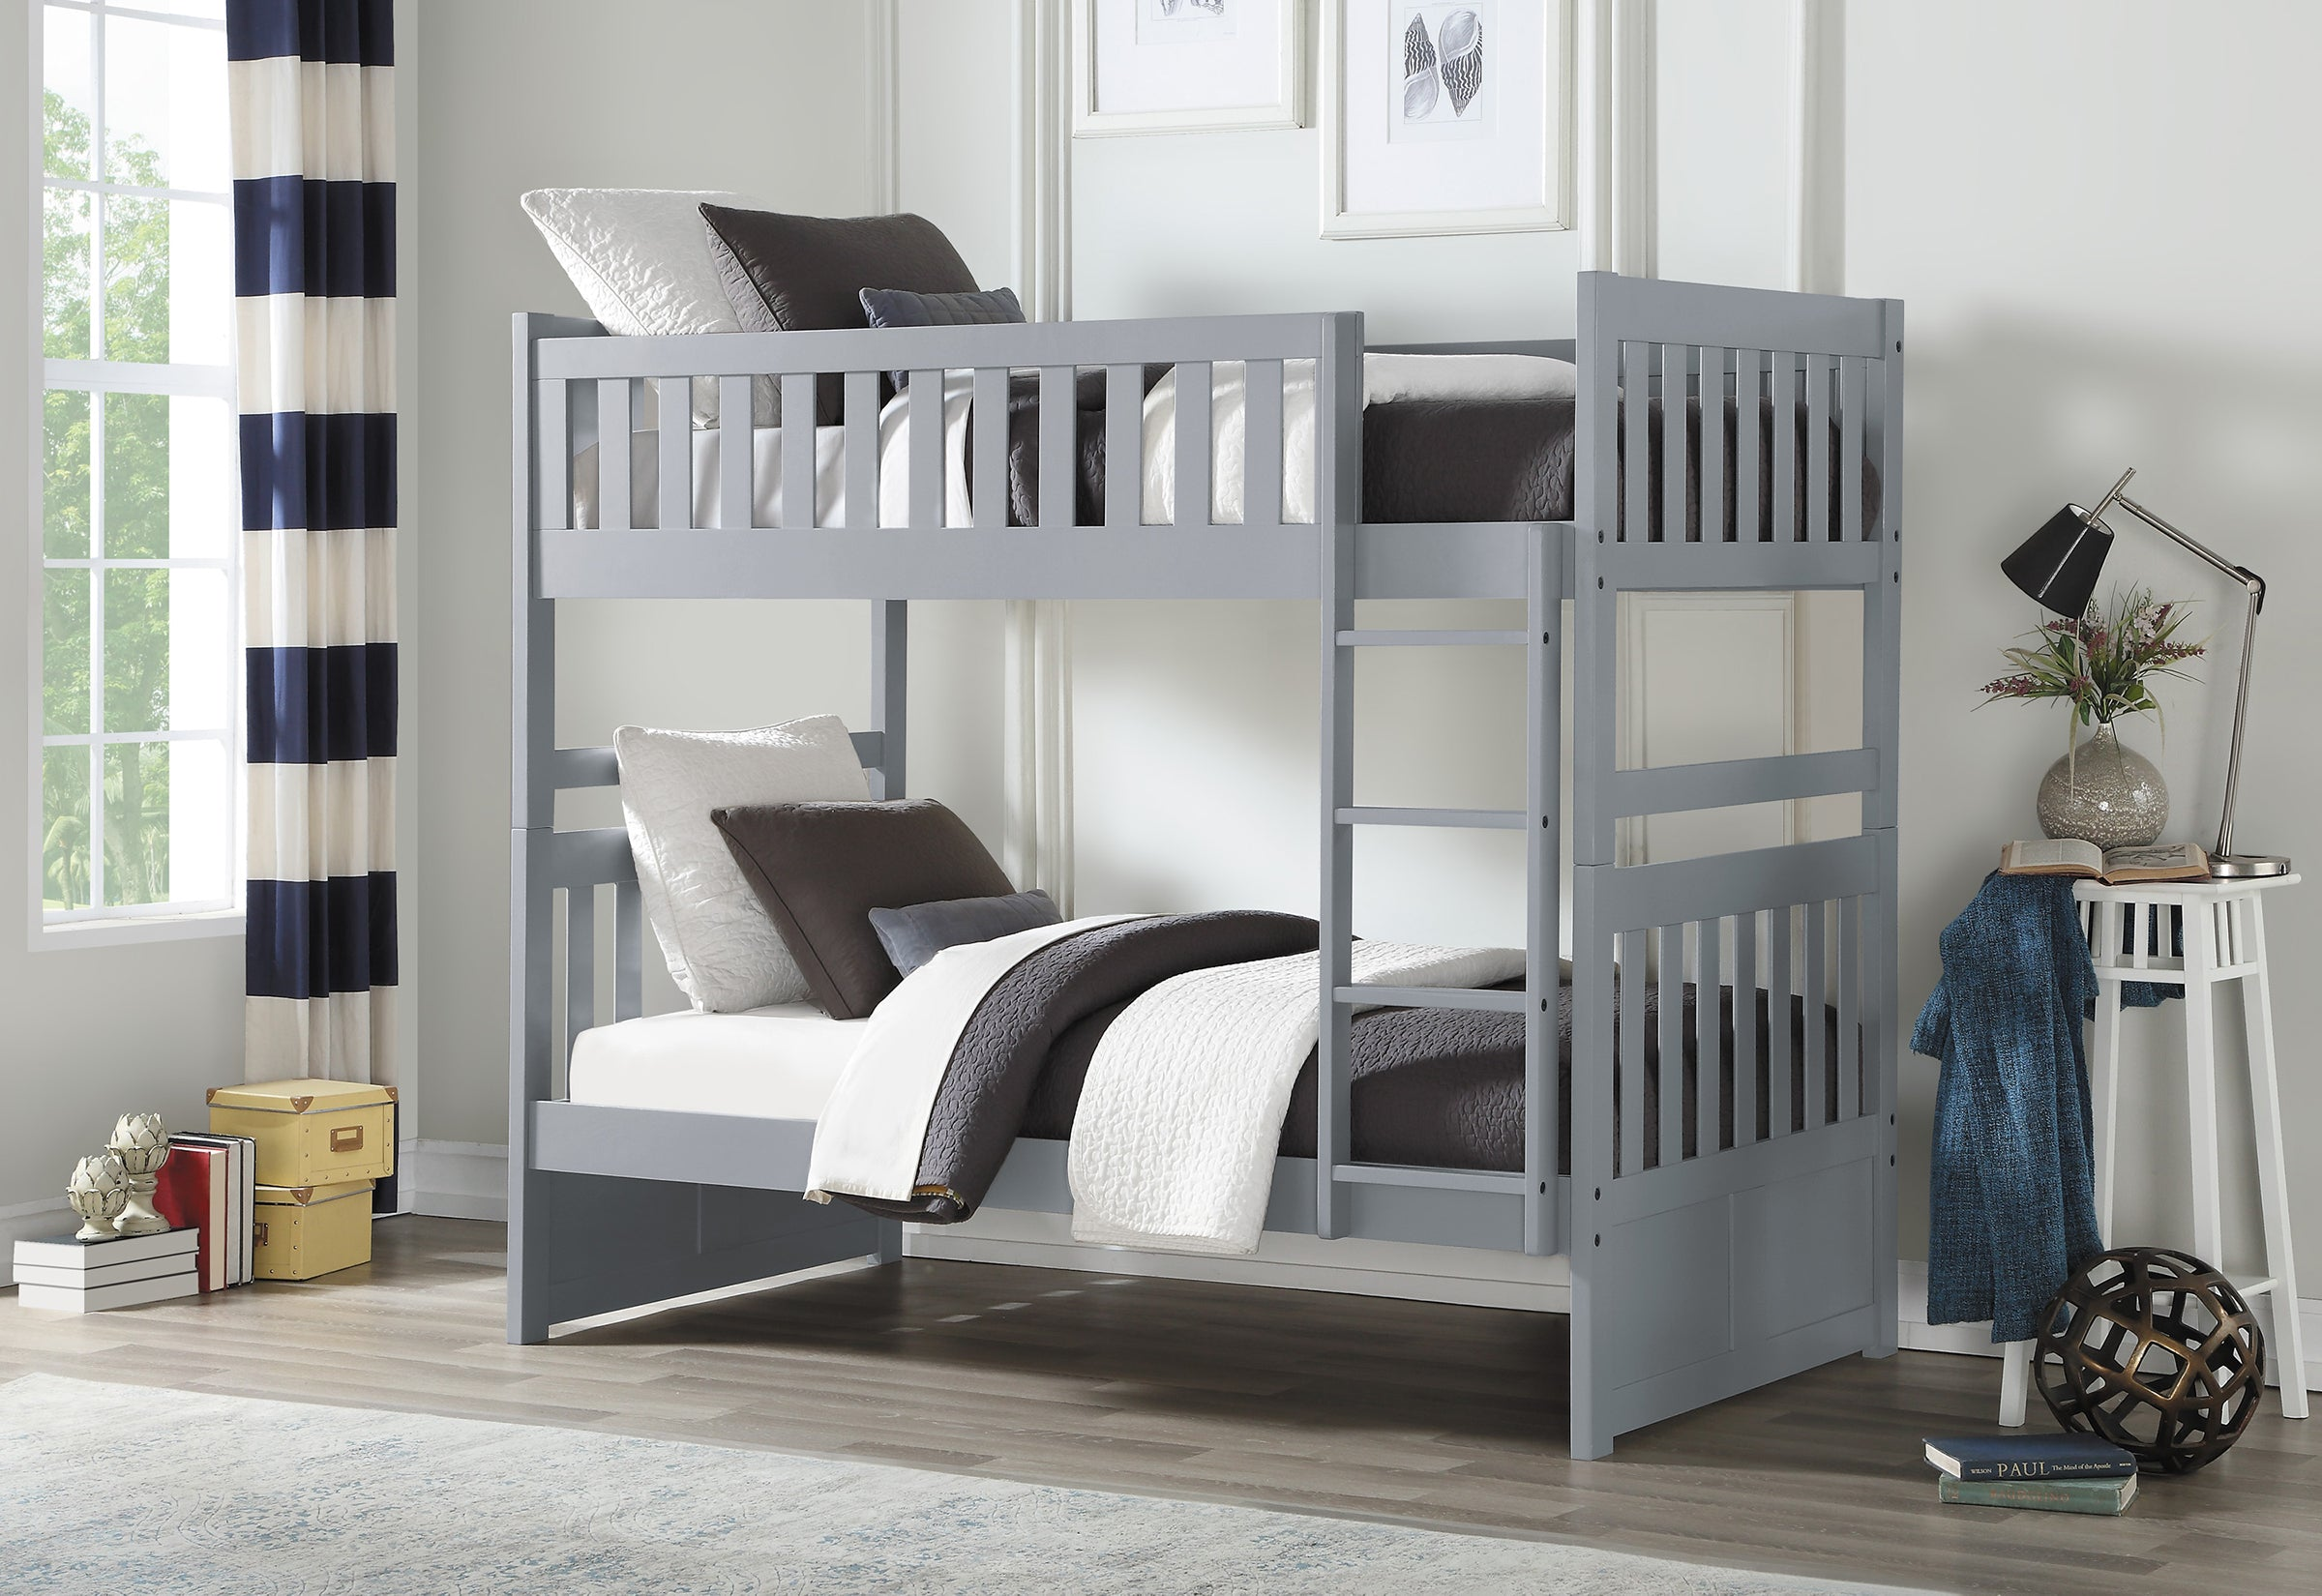 Twin Bunk Bed Set Cheaper Than Retail Price Buy Clothing Accessories And Lifestyle Products For Women Men